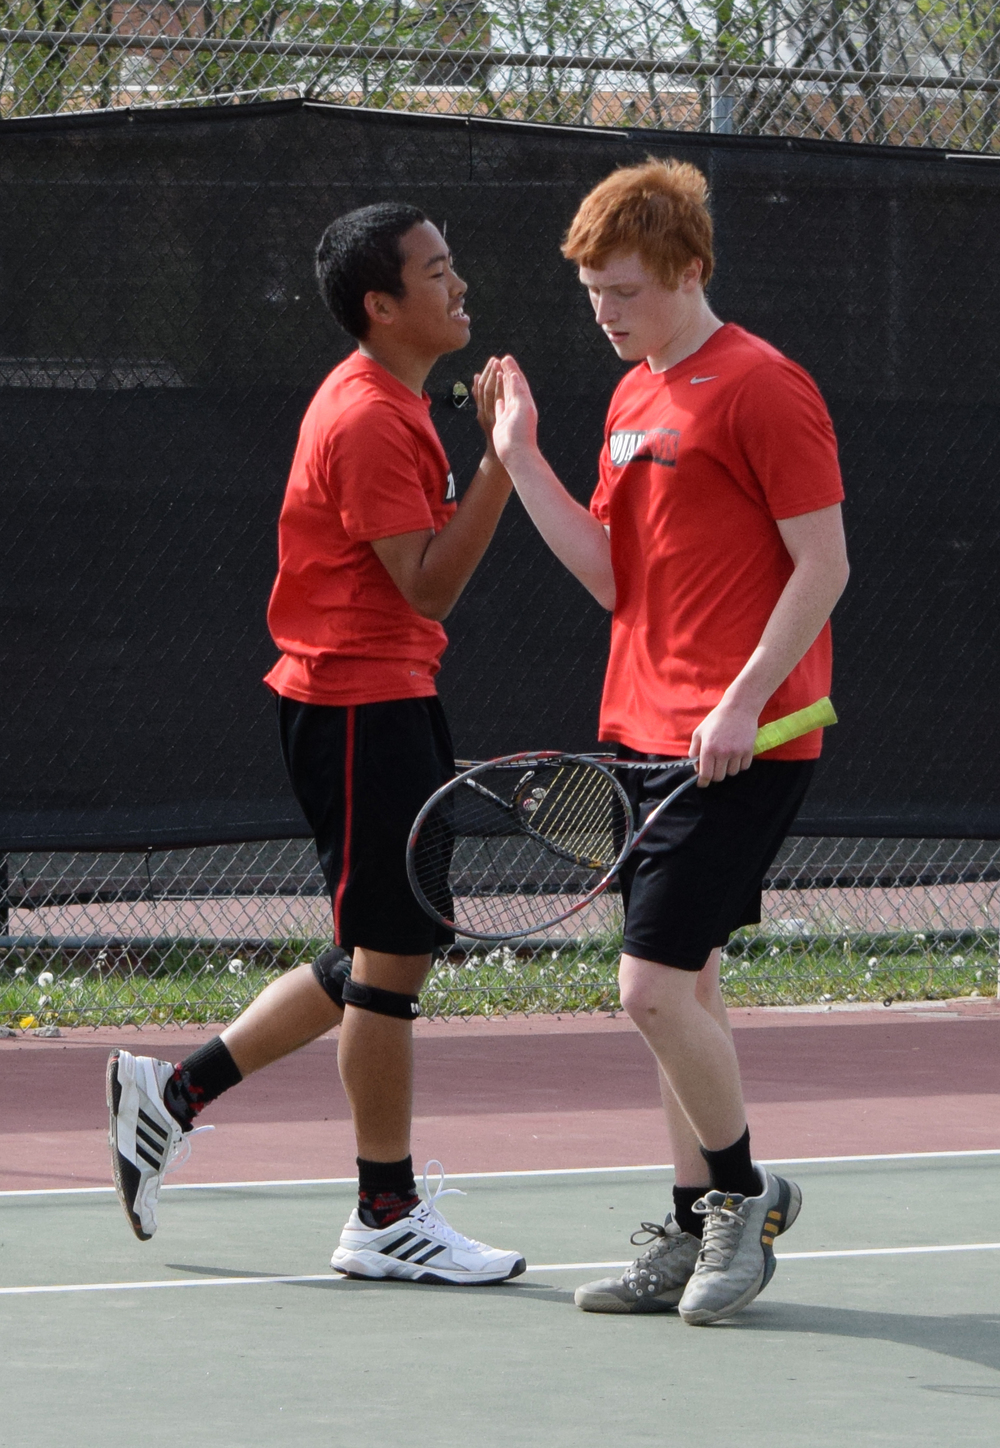 BRYCE MERENESS/Citizen photo Park Hill's No. 2 doubles team of Chandler To, left, and Joel Lesher react after winning a point in a dual against Pembroke Hill on Friday, April 15 at Plaza Tennis Complex in Kansas City, Mo.